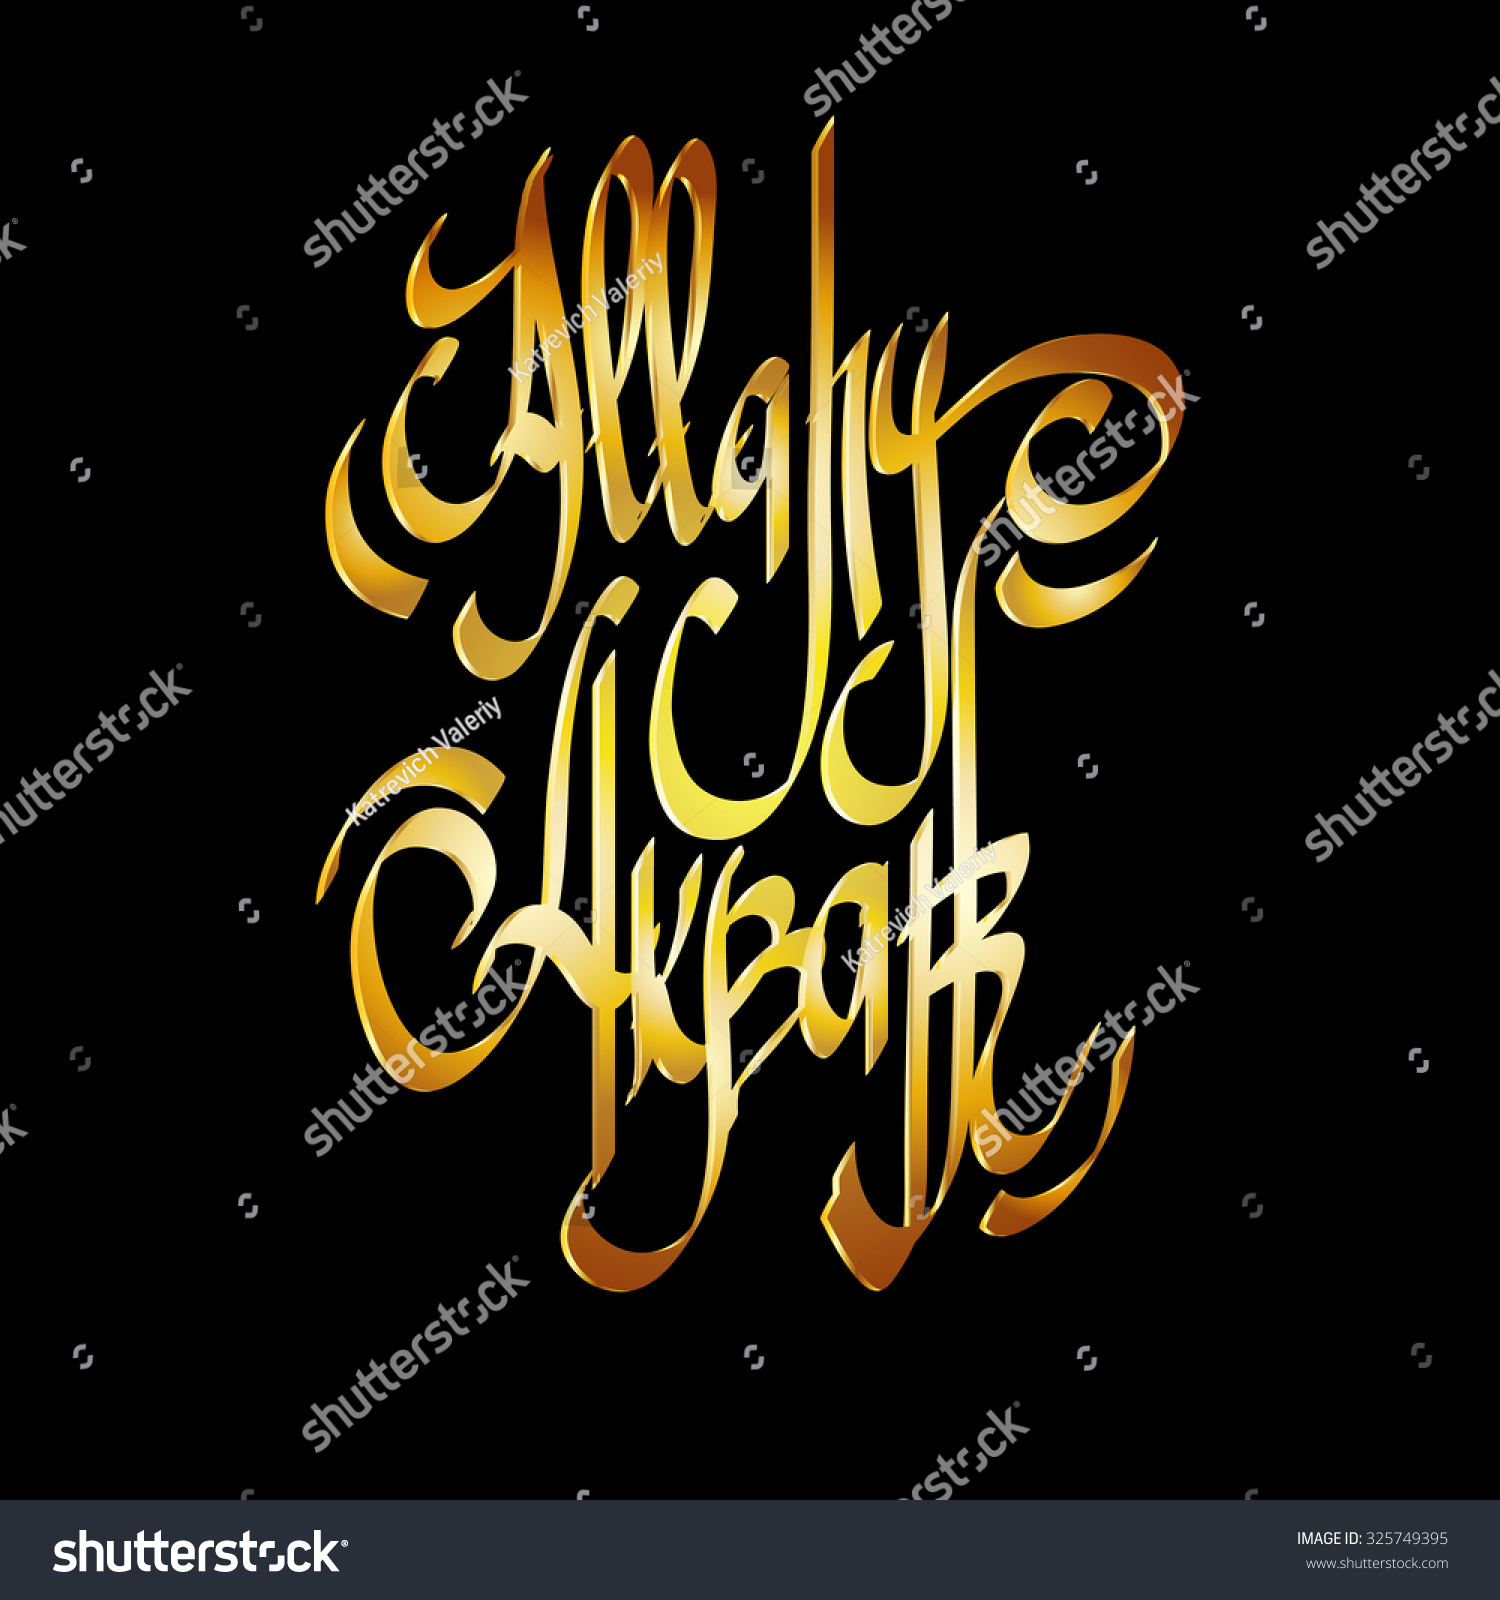 english calligraphy allahu akbar allah greatest のベクター画像素材